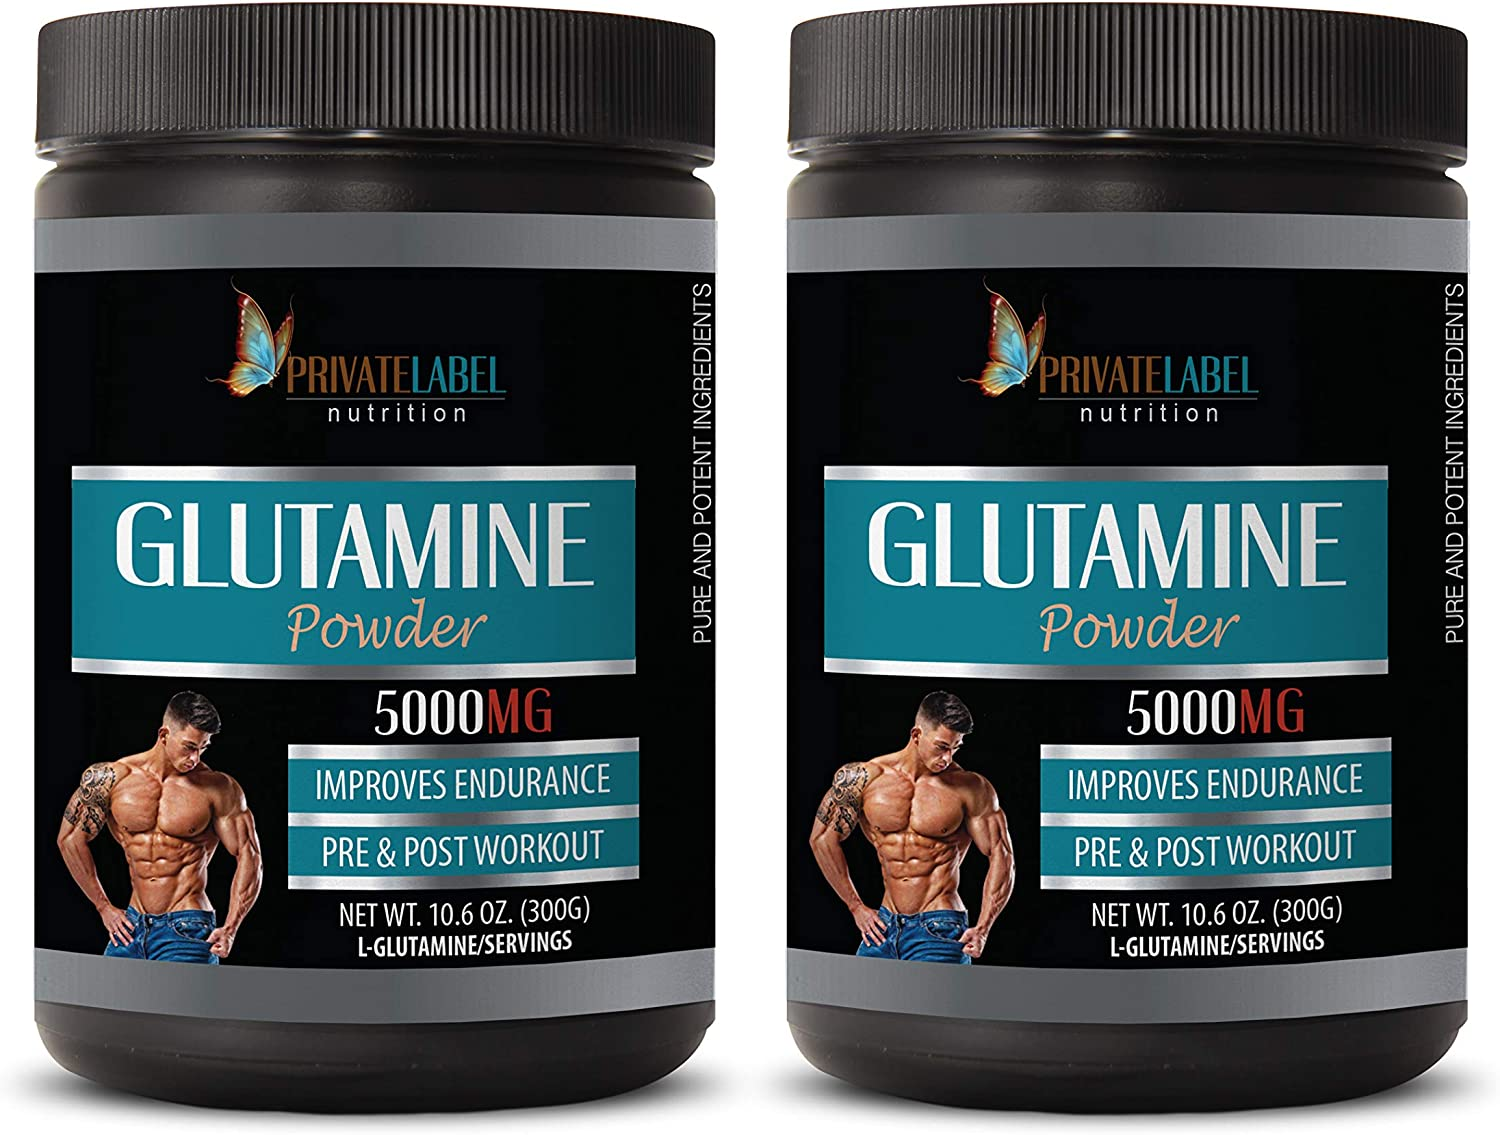 Post Workout Natural - GLUTAMINE 5000MG Improves Powder Max 60% excellence OFF Endura